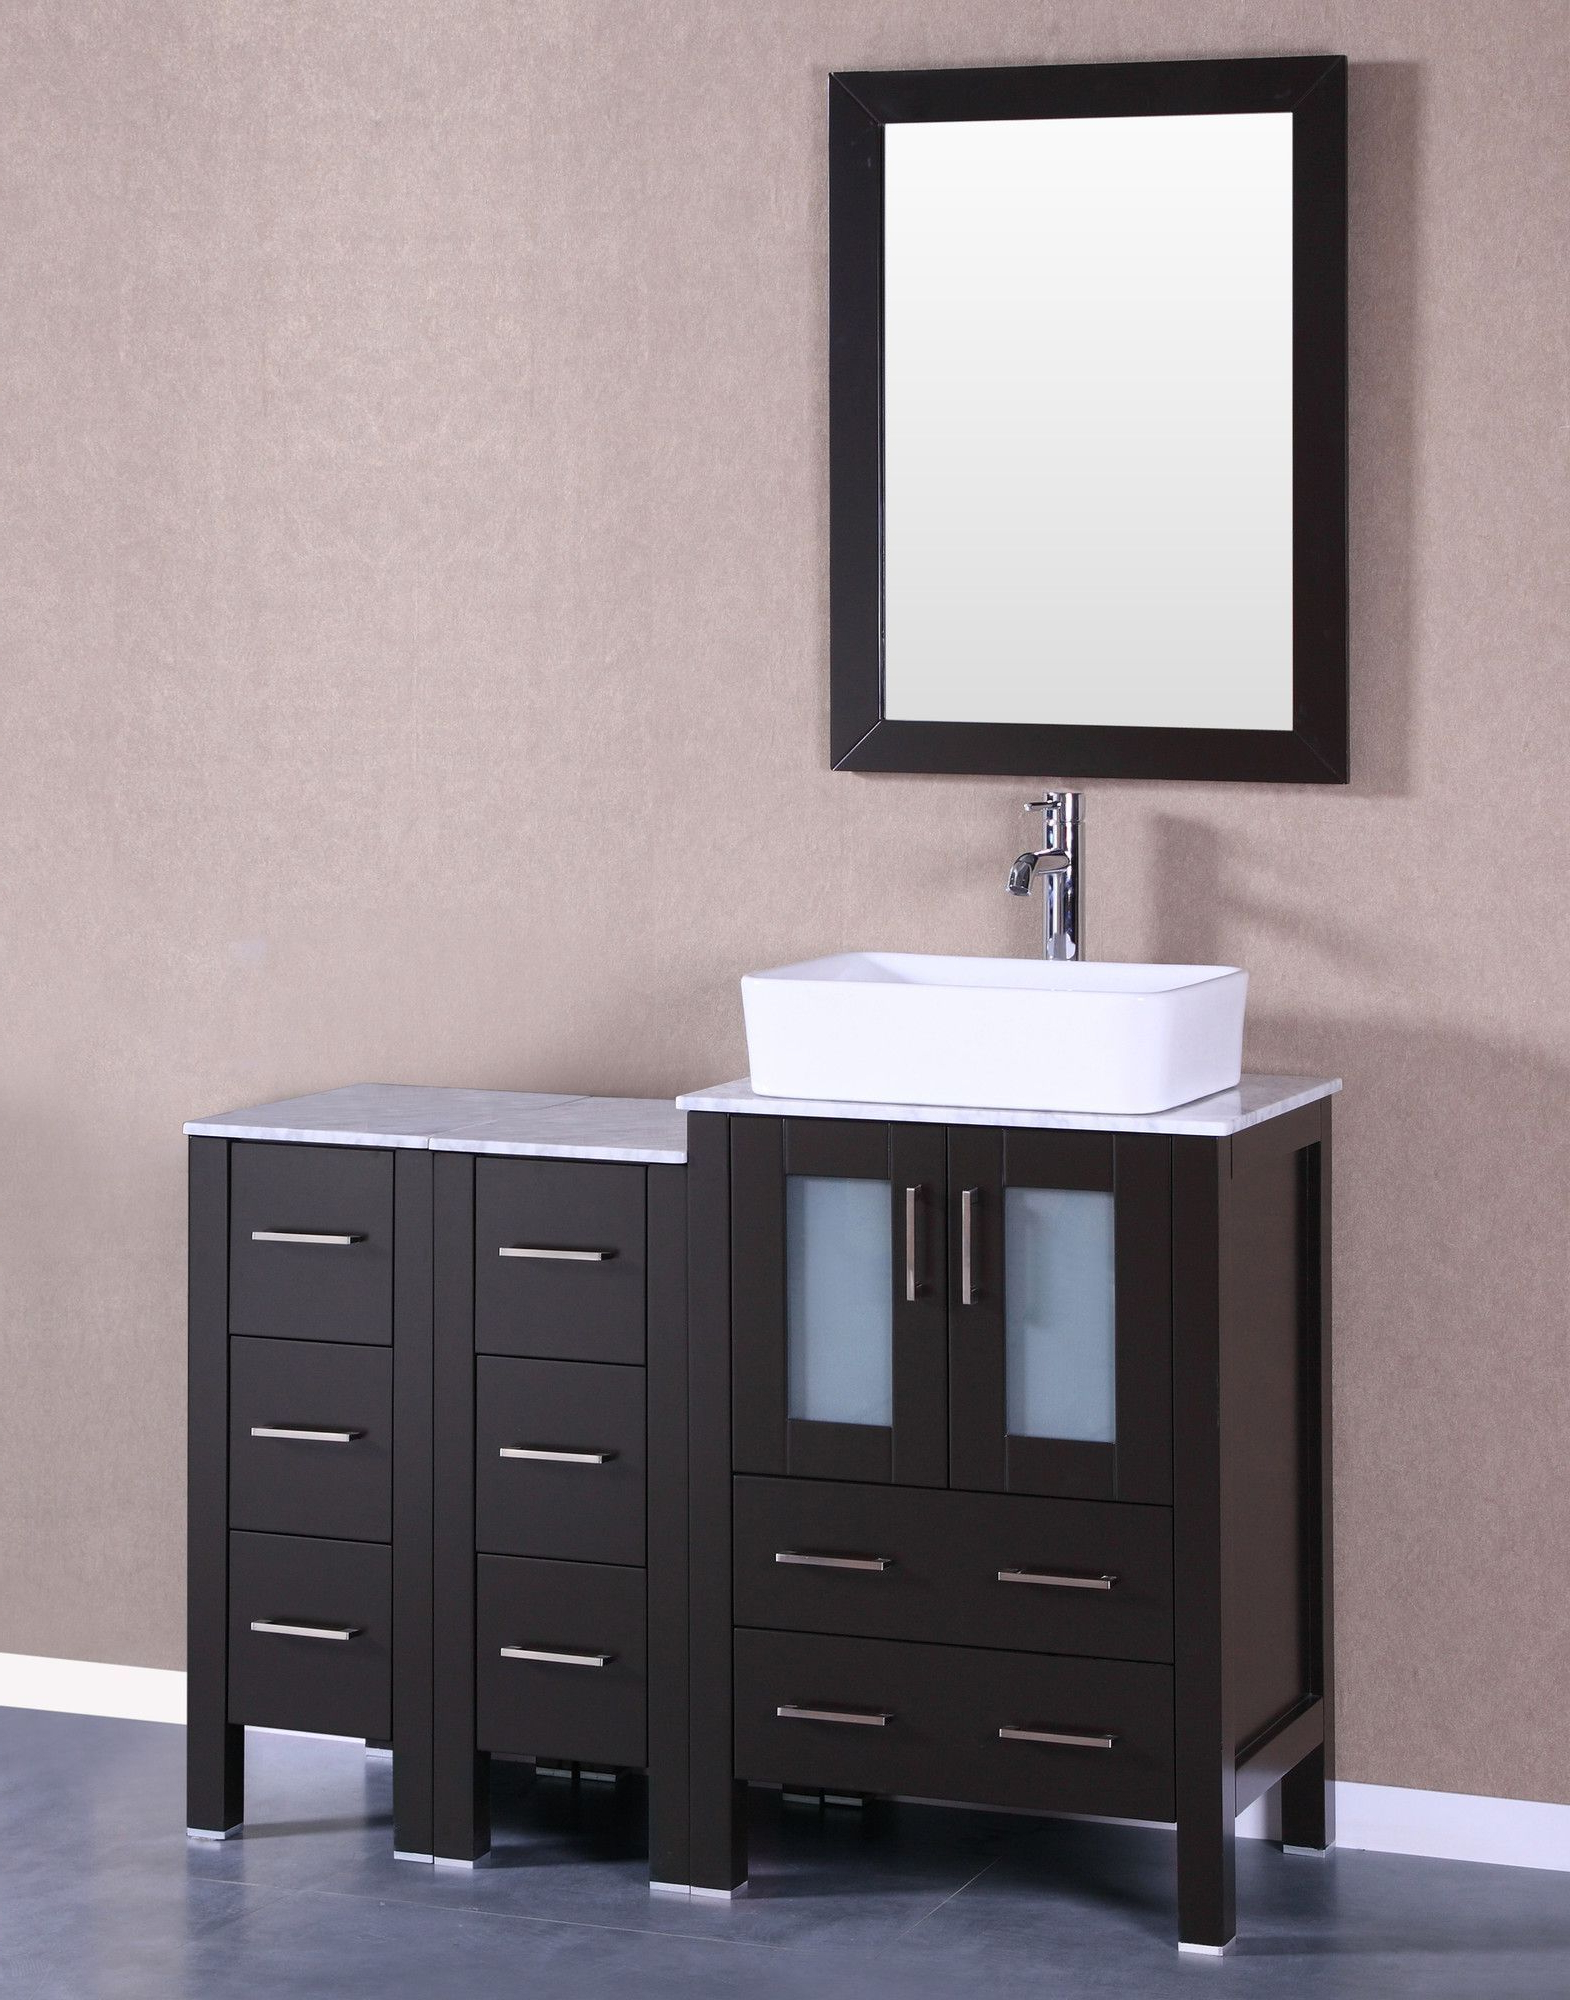 "Mexborough Bathroom/vanity Mirrors Pertaining To Most Popular 48"" Single Vanity Set With Mirror (View 14 of 20)"